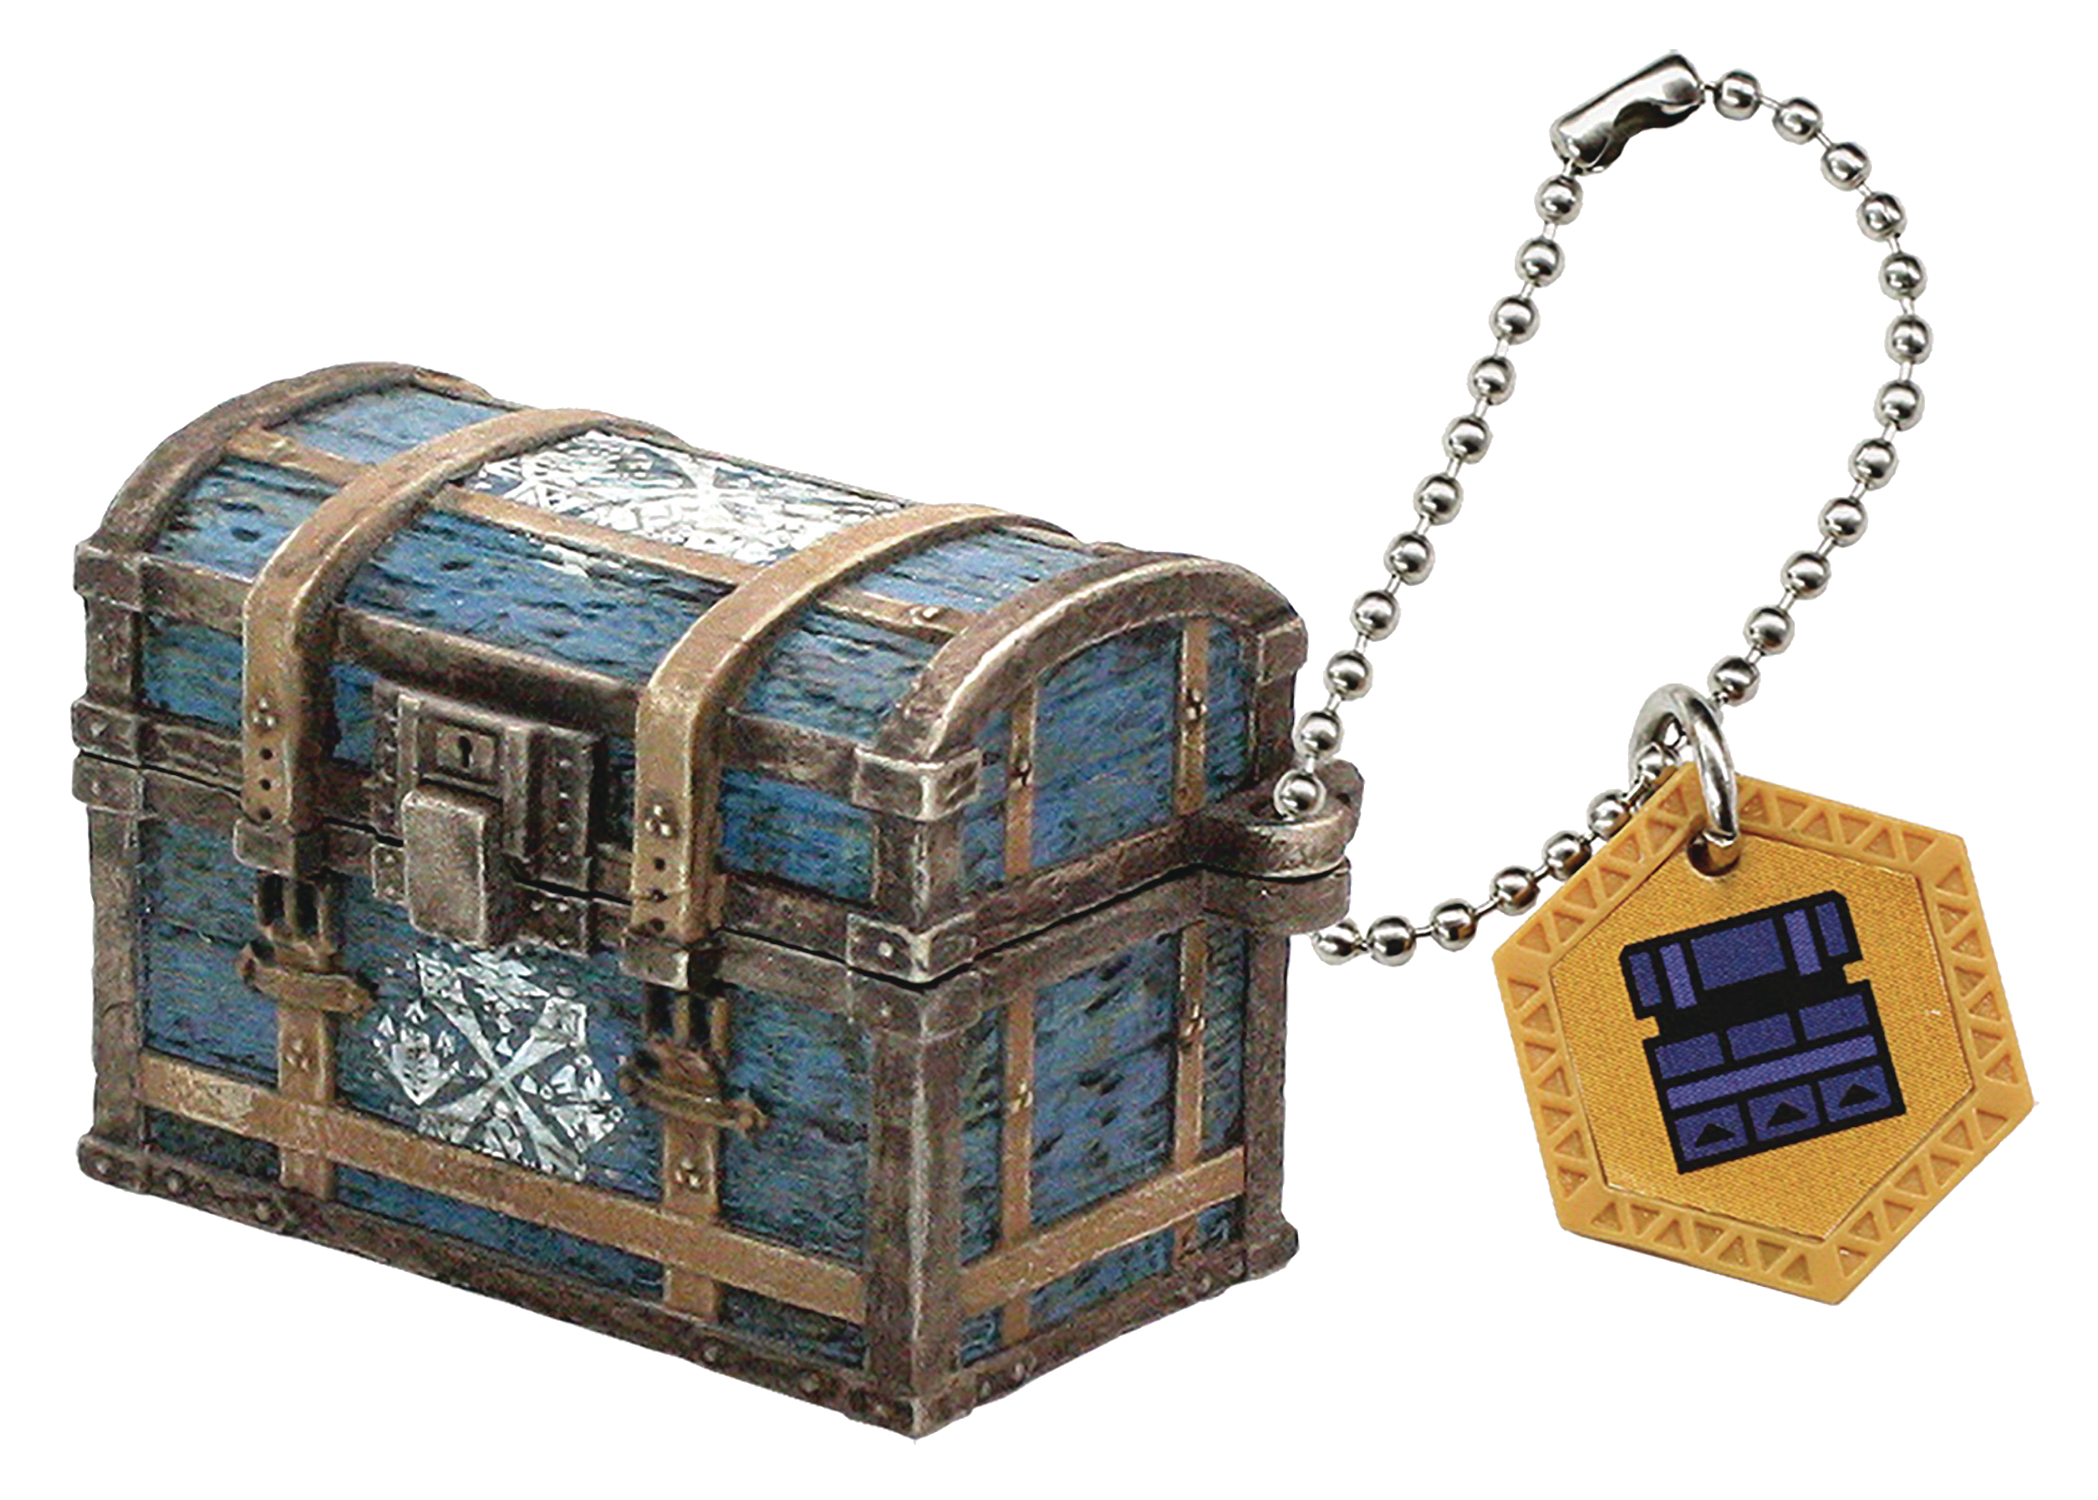 MONSTER HUNTER ITEM MASCOT PLUS SUPPLY BOX KEYCHAIN